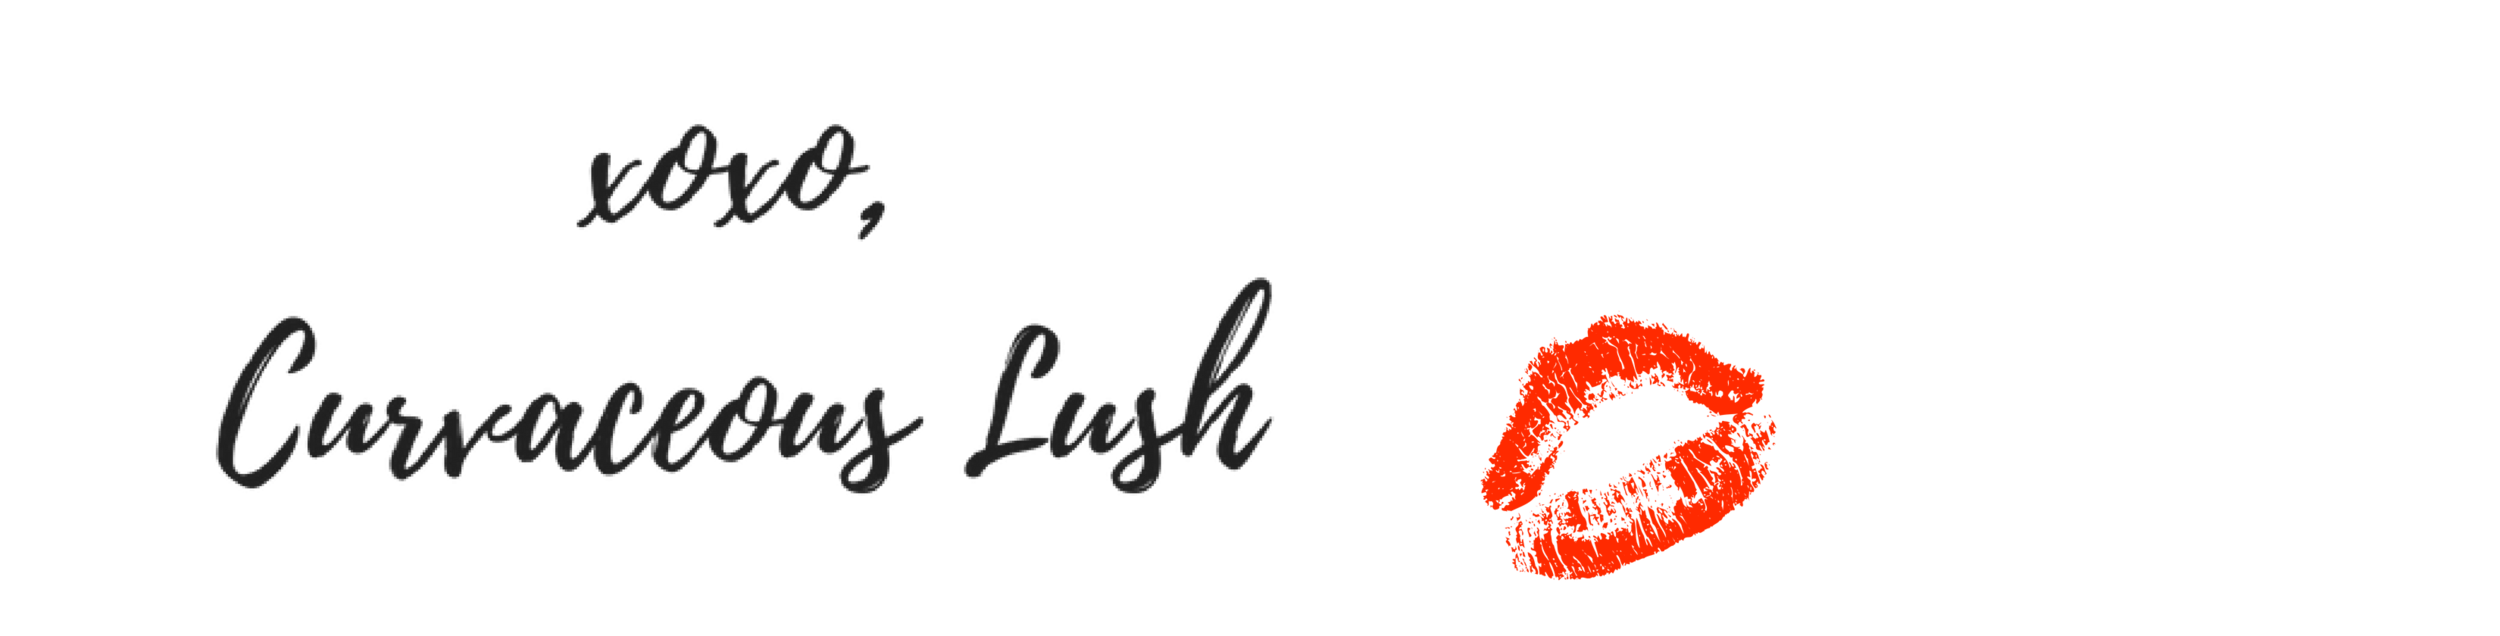 Copy of Curvaceous Lush